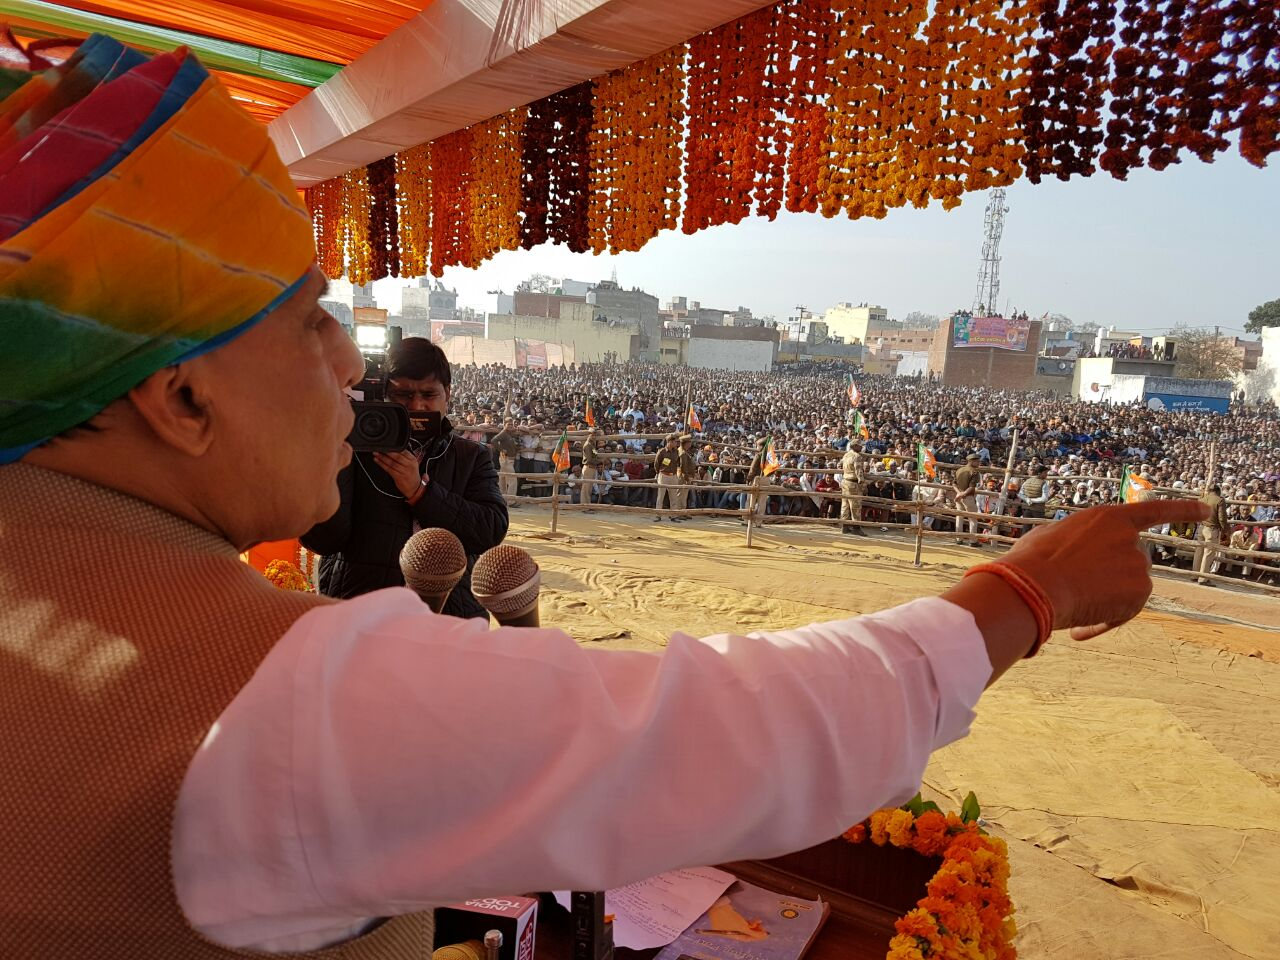 Rajnath Singh addressing people in Agra during Assembly Elections 2017